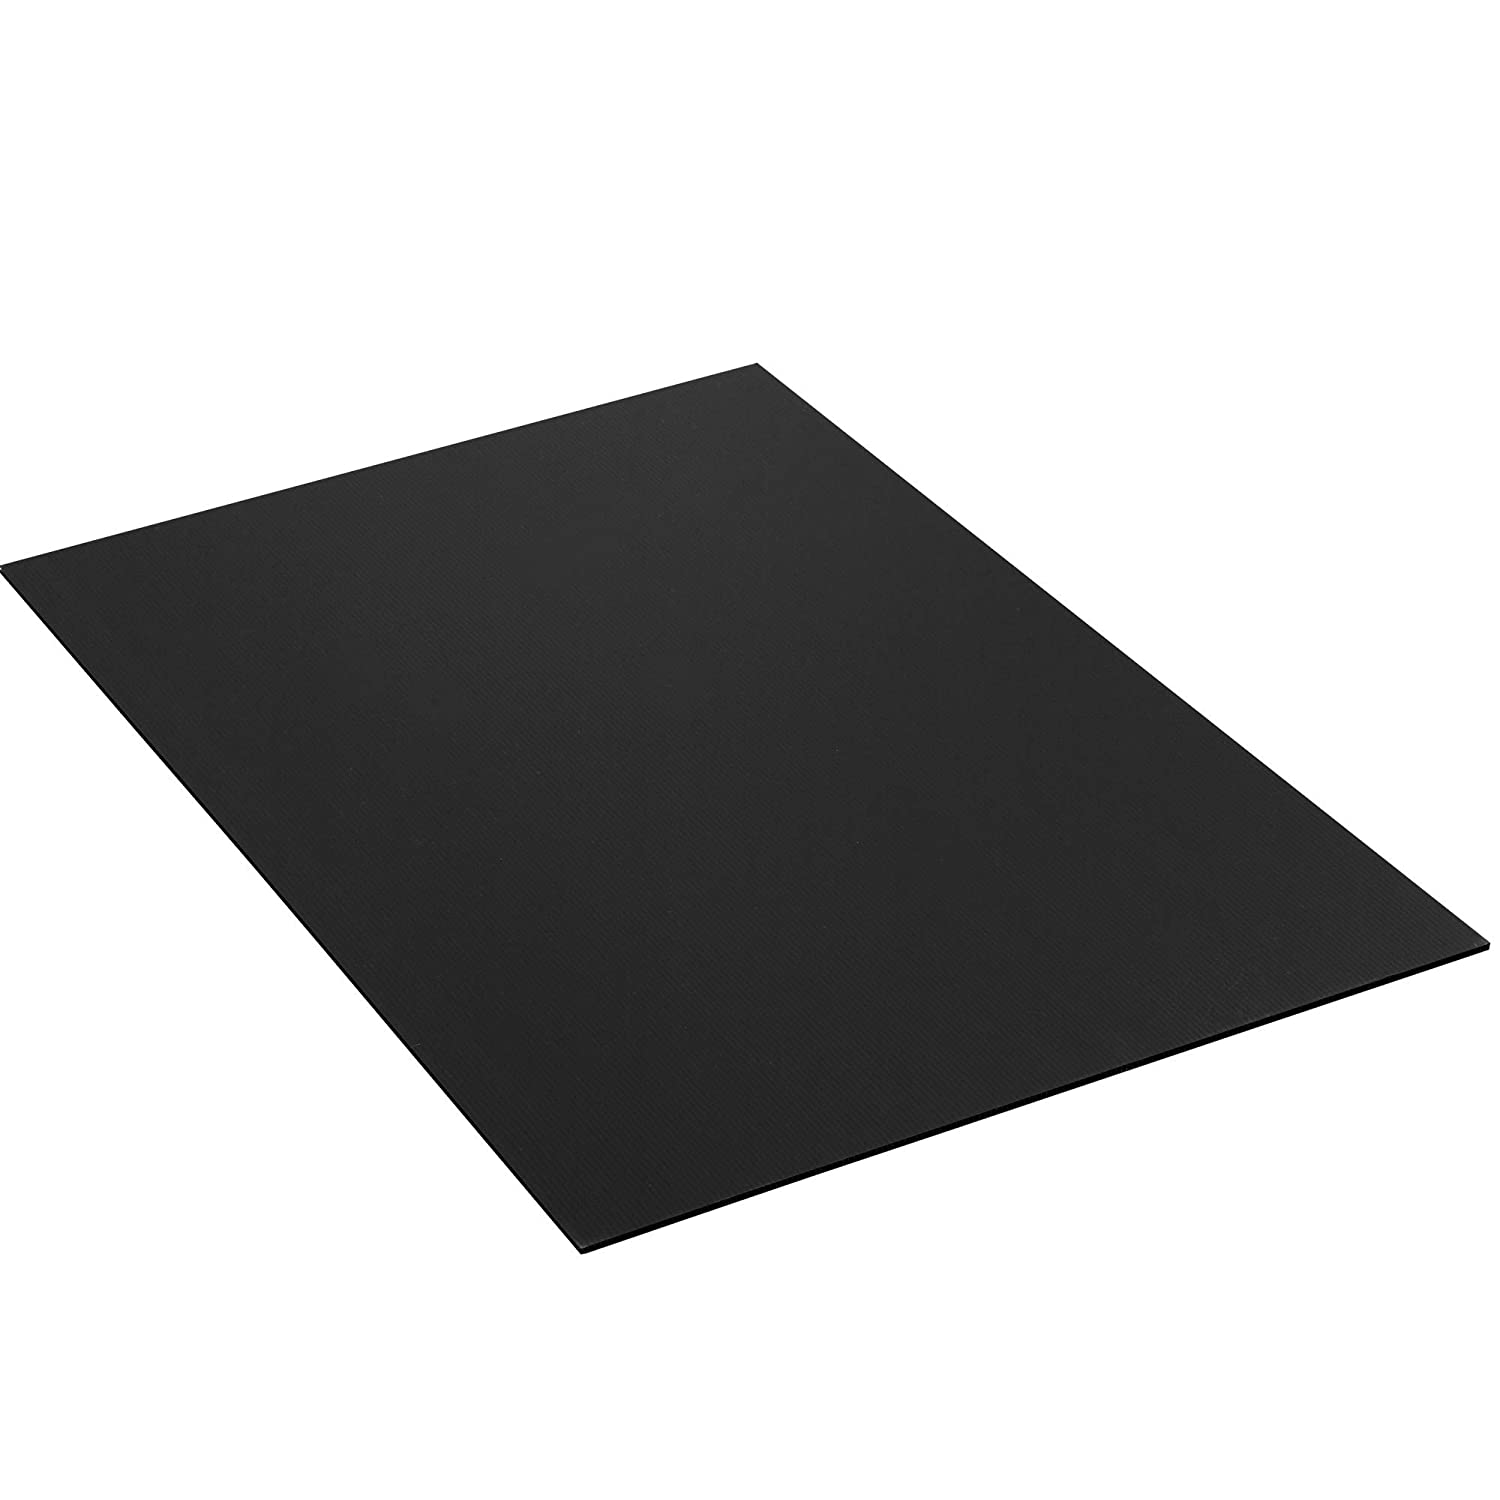 Top San Antonio Mall Pack Supply Plastic Sheets Complete Free Shipping 40